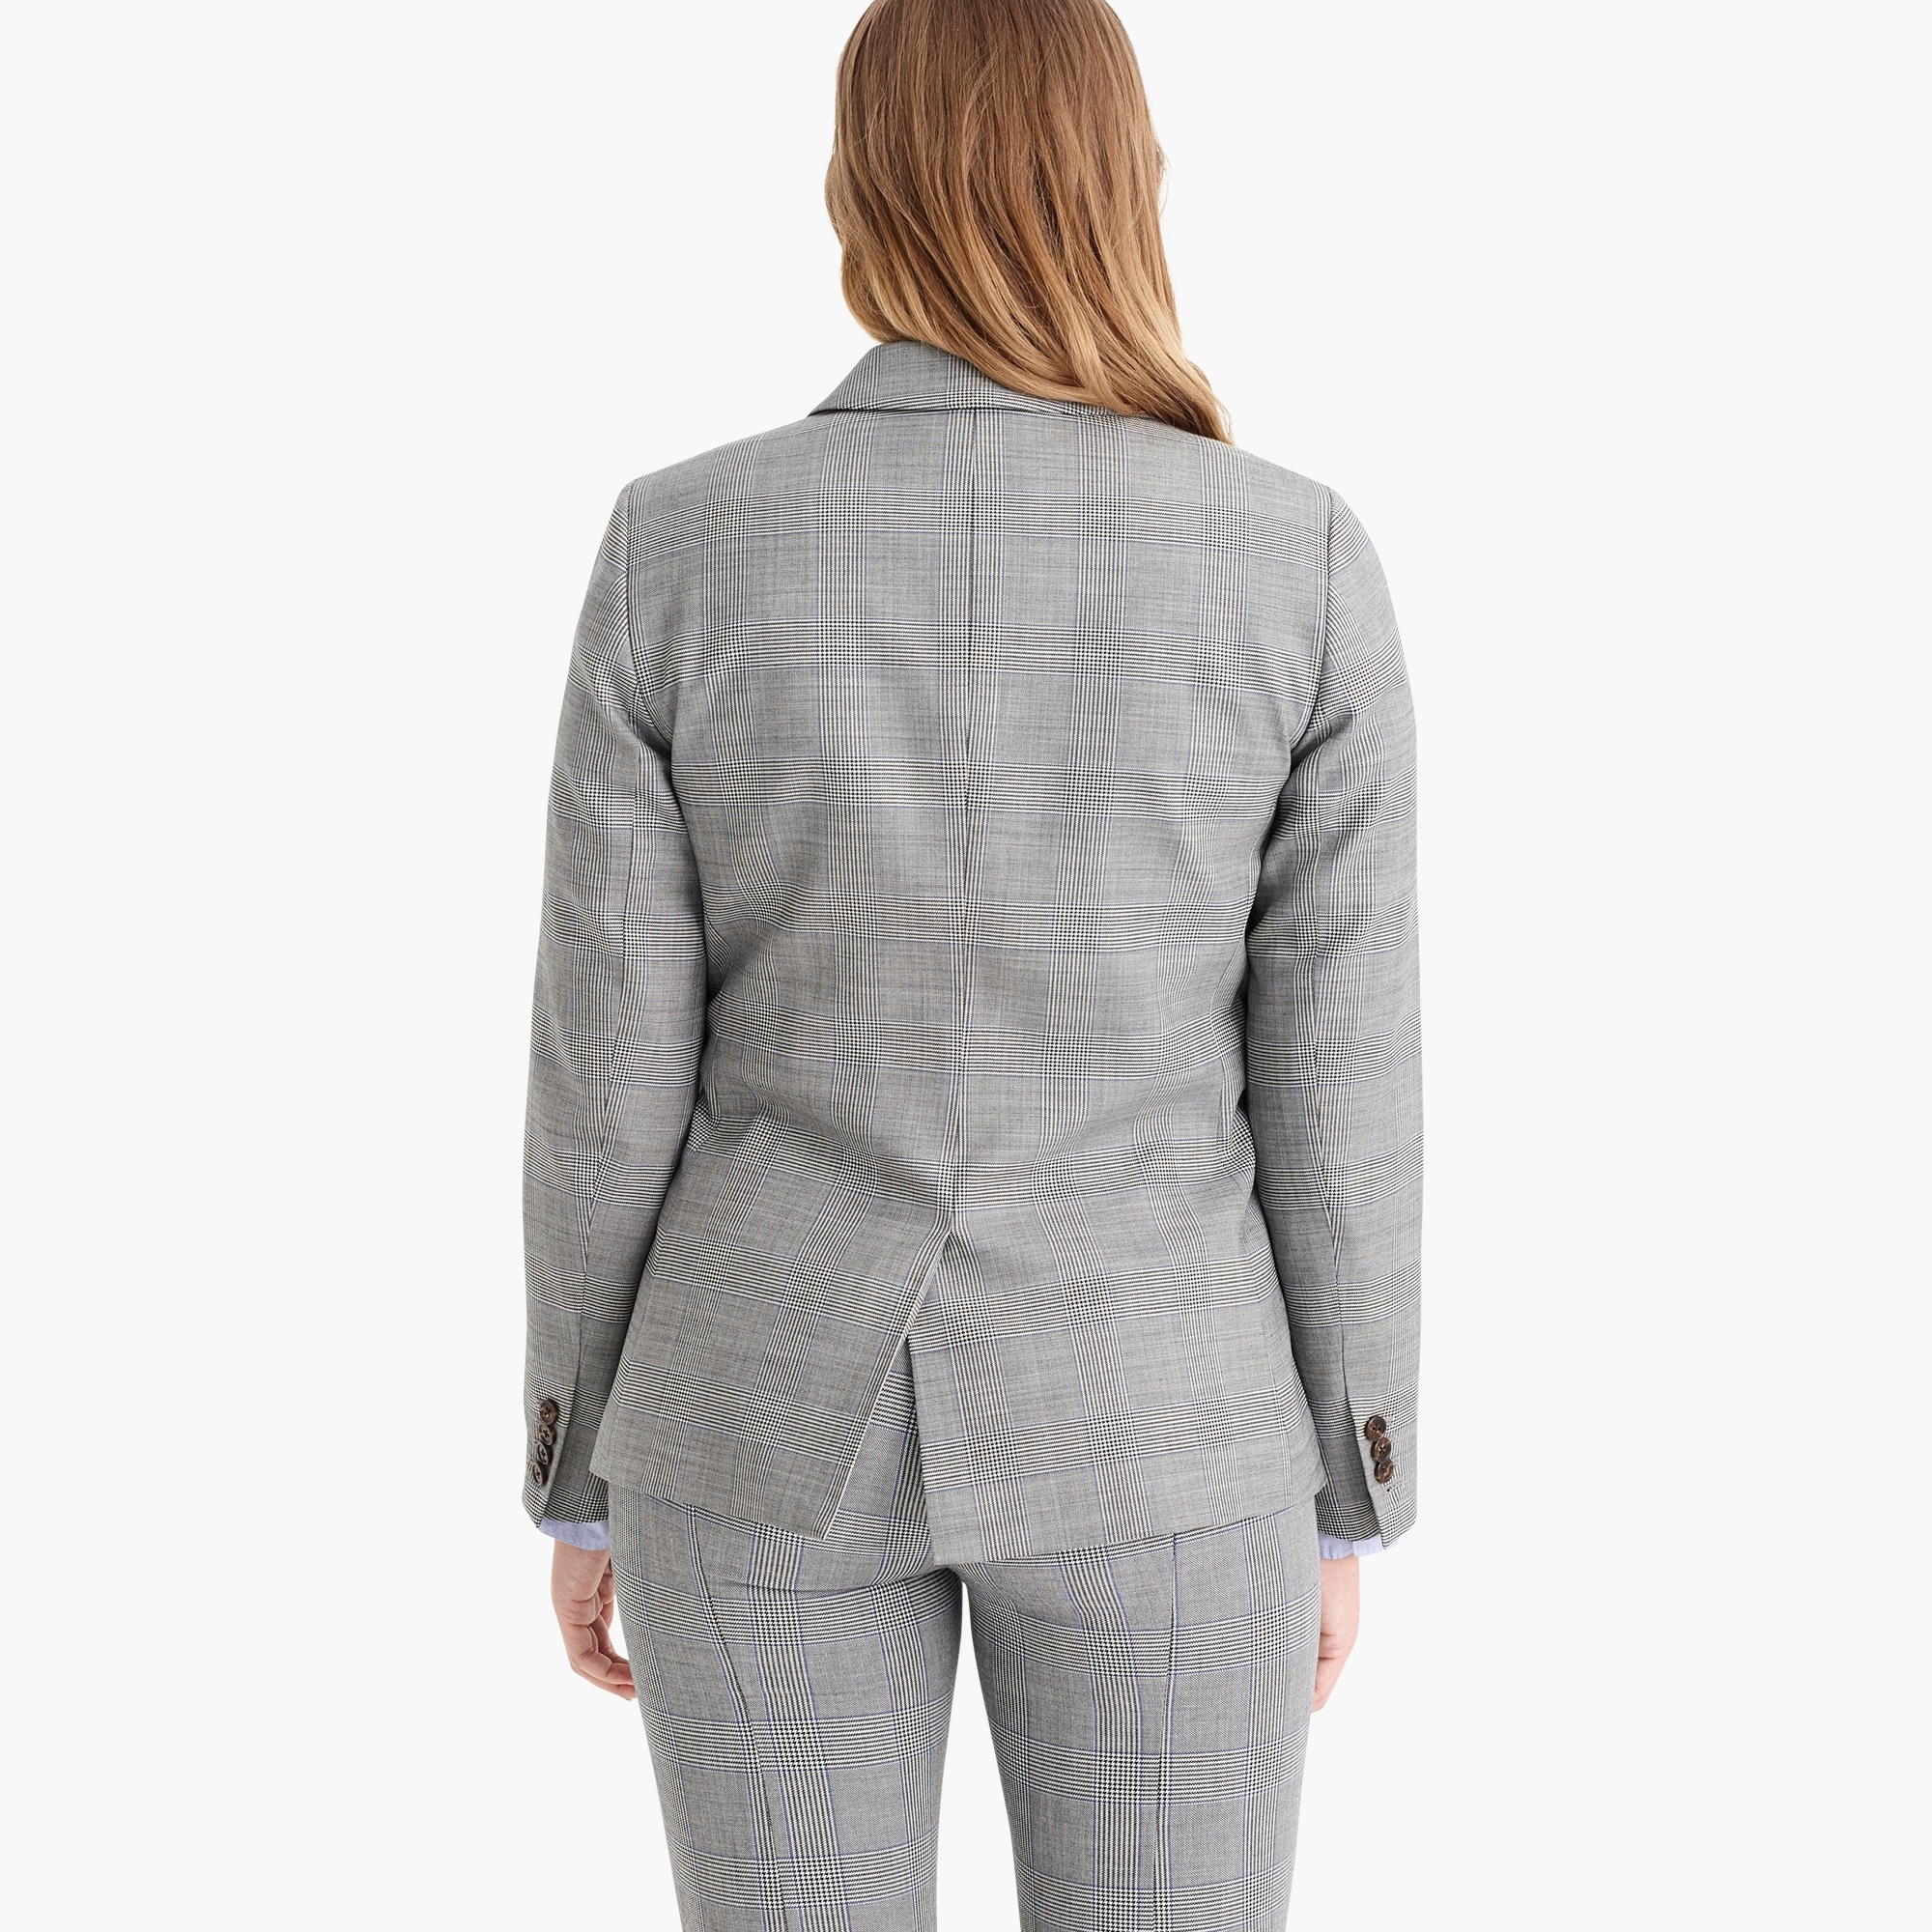 Image 5 for Ruffle-pocket blazer in glen plaid